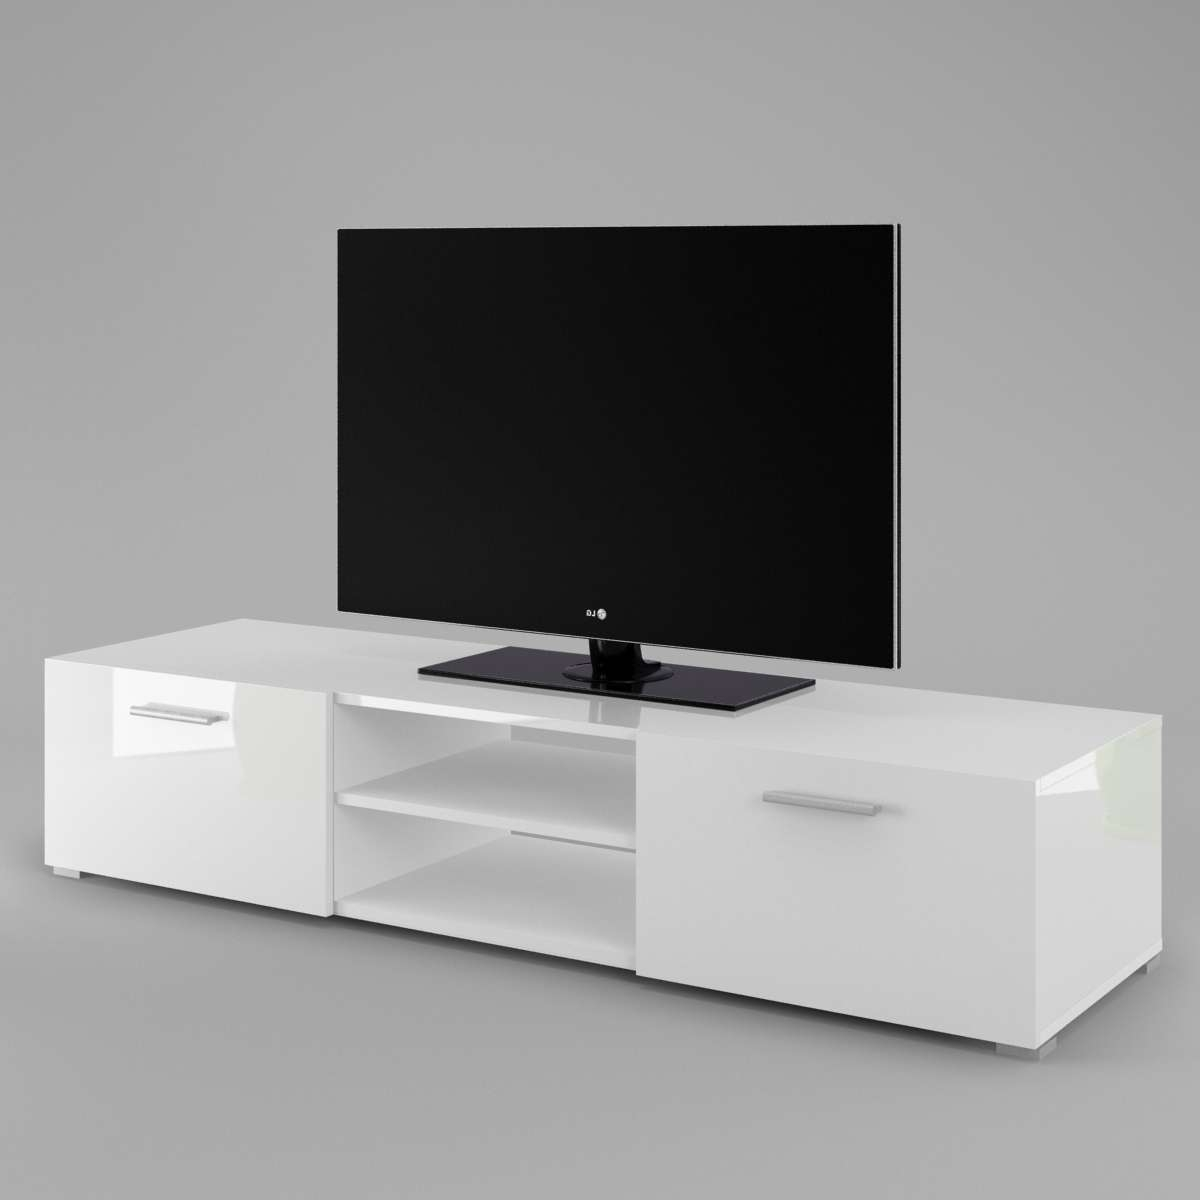 Tv Cabinet Luna – Labi Furniturelabi Furniture With Tv Cabinets (View 14 of 20)